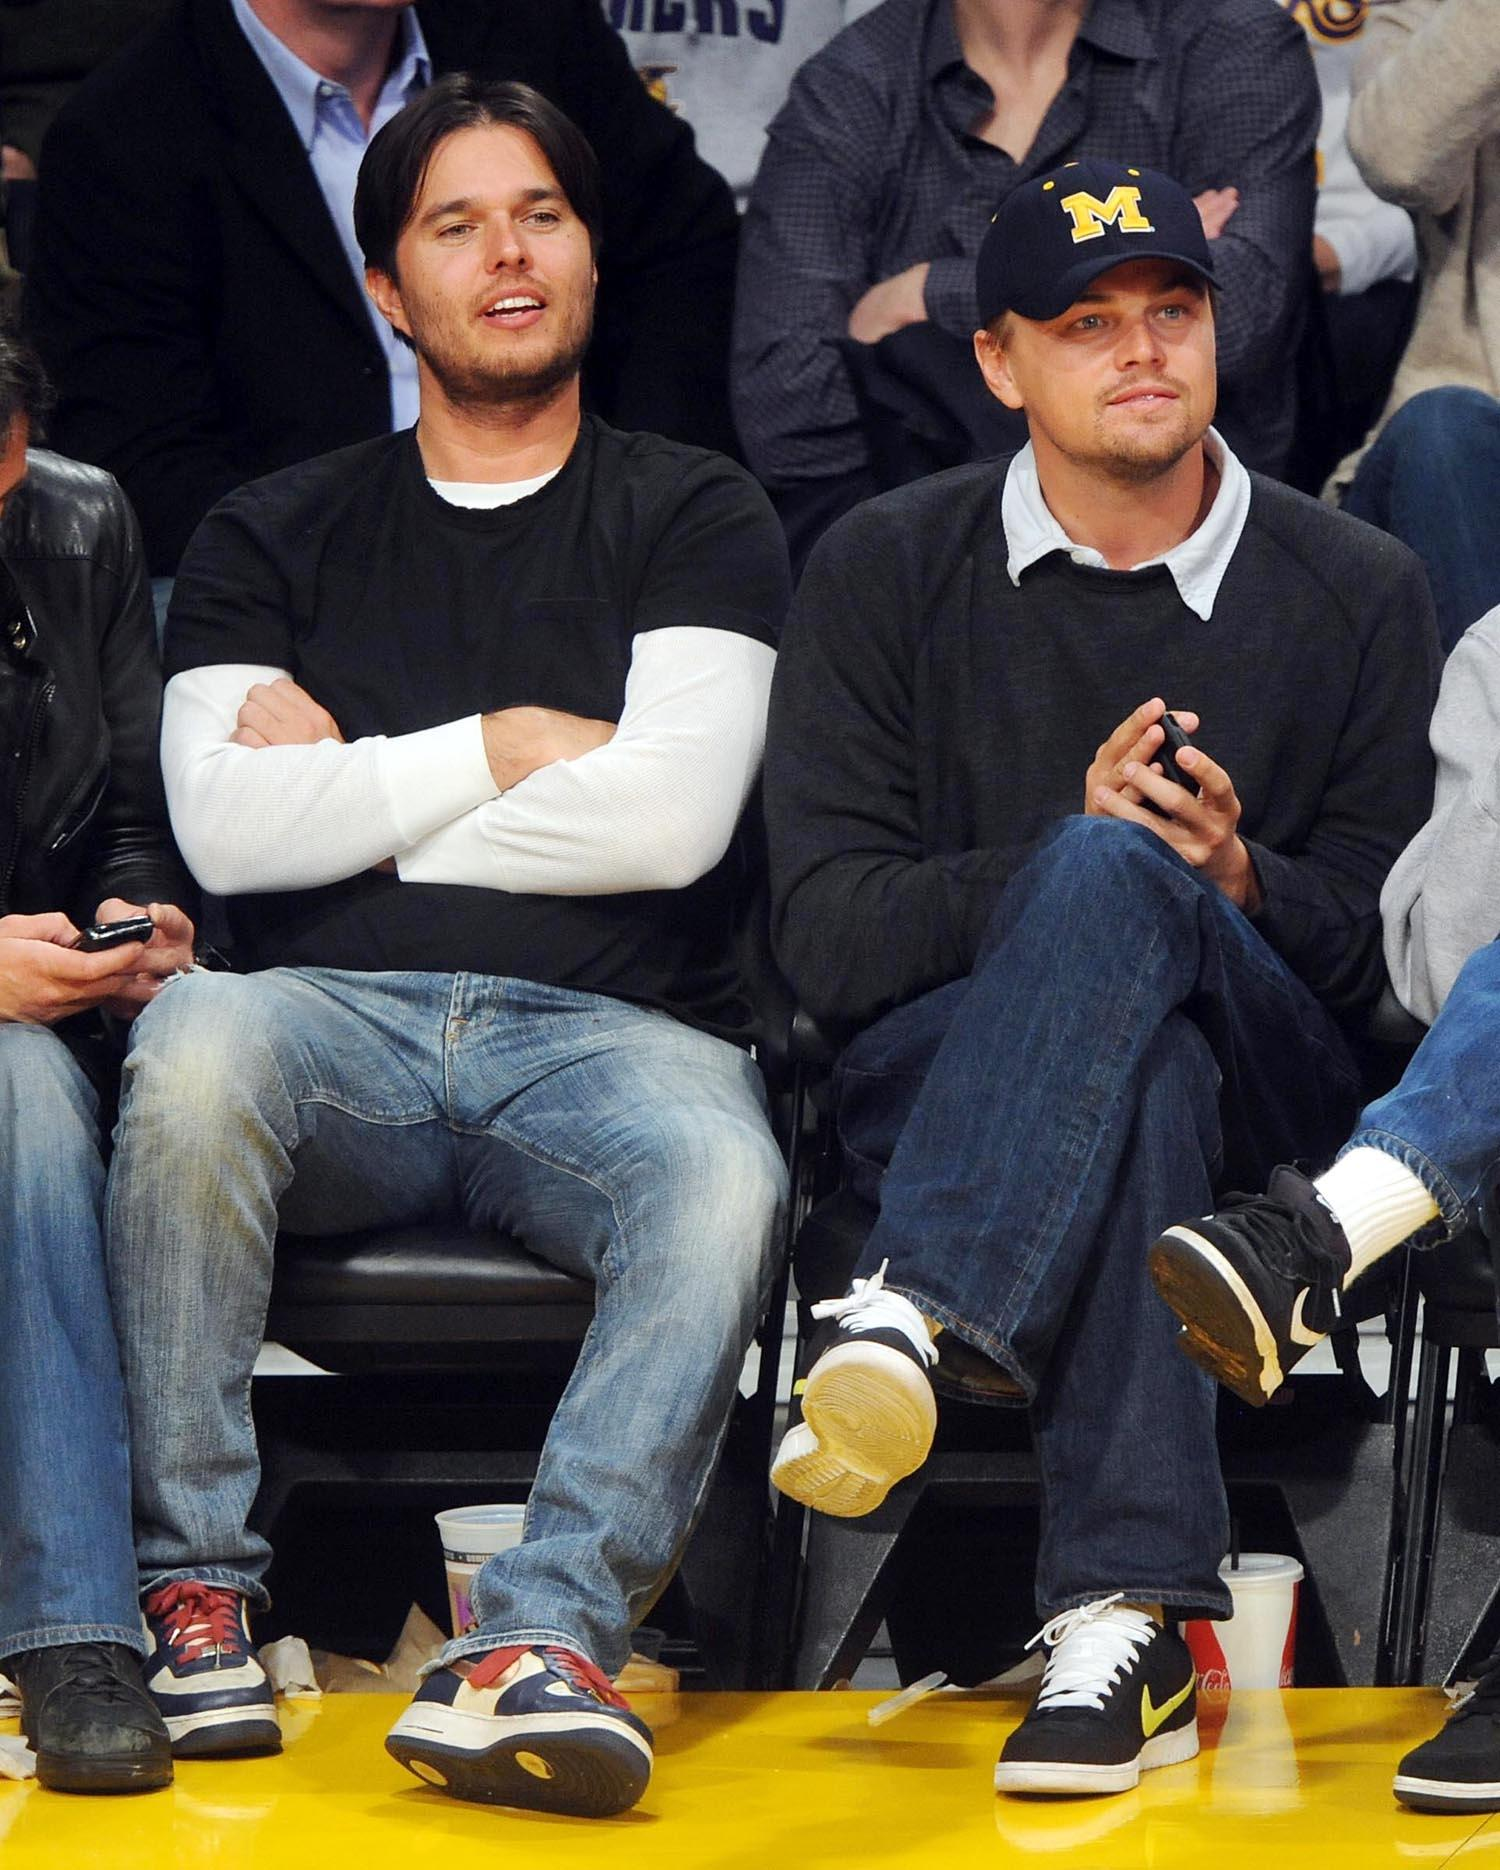 ©2009 credit Gamepiks only Actrors Lucas Hass, Adam Farrar (Leo's brother), Leonardo DiCaprio and Kevin Dilon (L-R) sit courtside as they attend the Los Angeles Lakers/Miami Heat NBA game at Staples Center in Los Angeles on December 4, 2009. The Lakers defeated the Heat 108-107 with a three-point shot by Kobe Bryant at the buzzer. XYZ (Photo by Philip Ramey/Corbis via Getty Images)